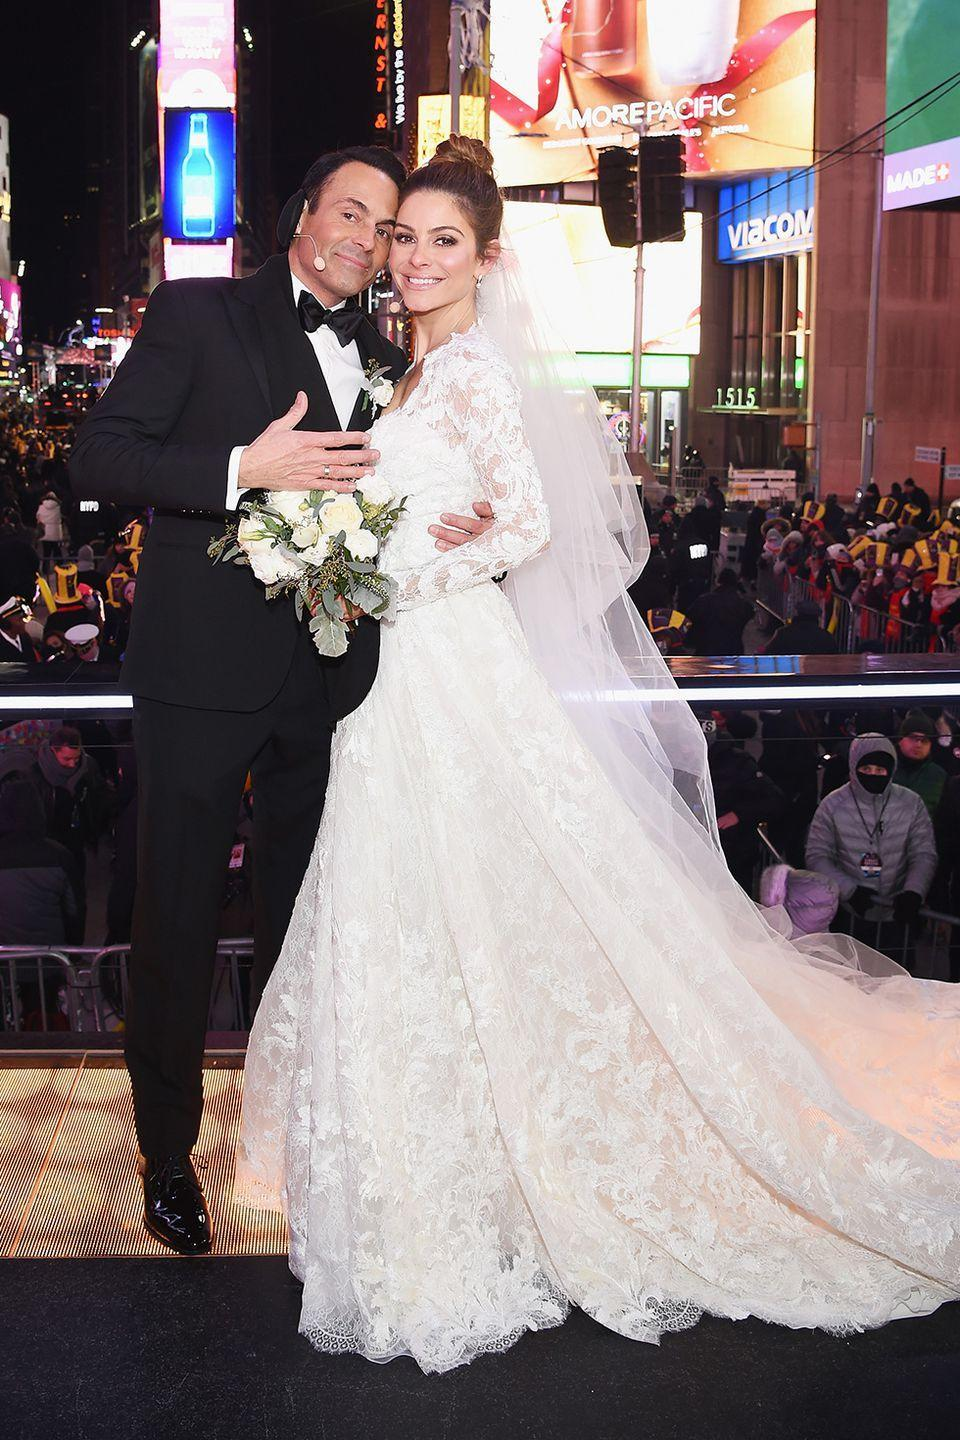 <p>Maria Menounos got married to her longtime beau Kevin Undergaro on New Year's Eve in a surprise ceremony in Times Square! Her long-sleeved Atelier Pronovias mermaid gown was classically chic (and hopefully the long sleeves kept her warm).</p>